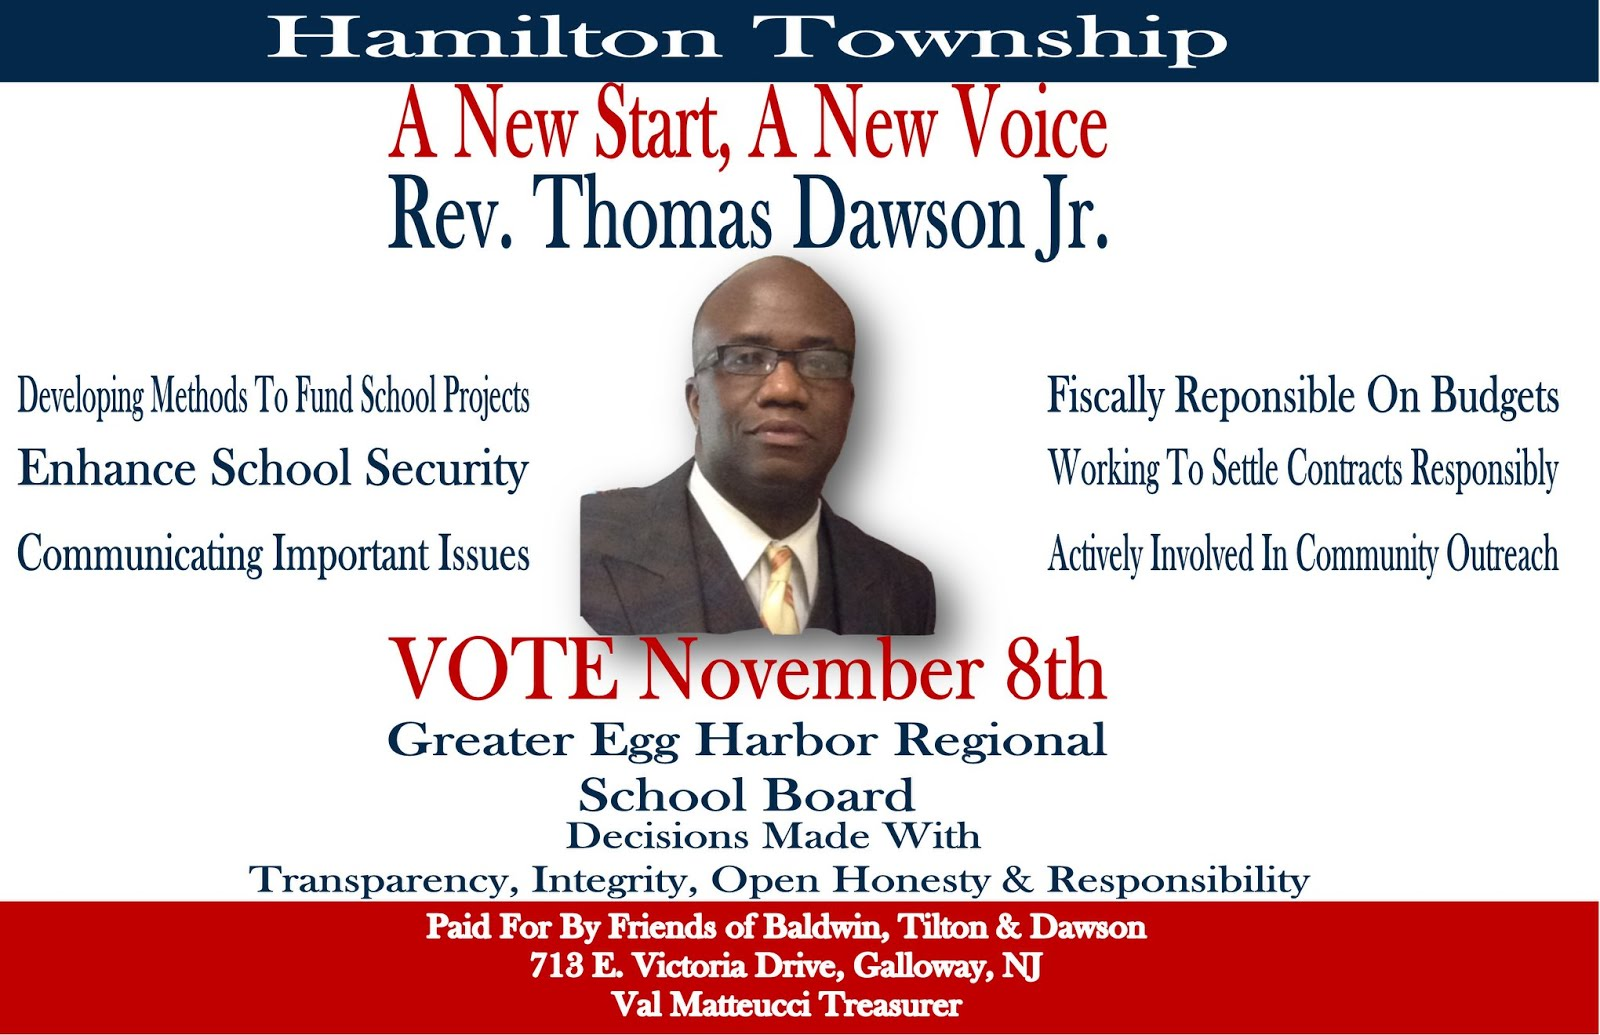 Hamilton Team (Rev. Dawson Jr.)